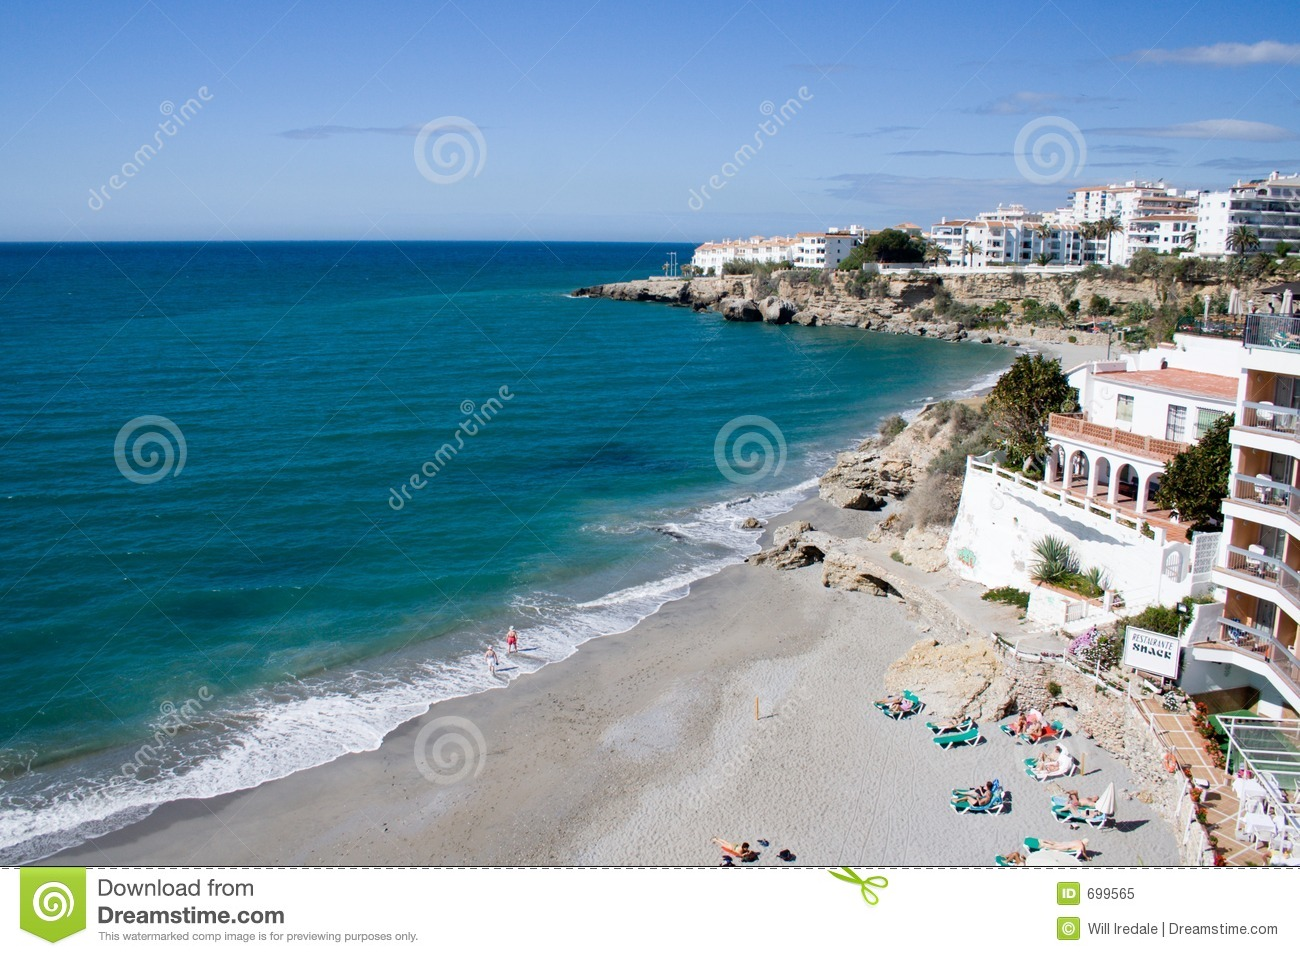 Costa Del Sol Beach Royalty Free Stock Photo - Image: 699565